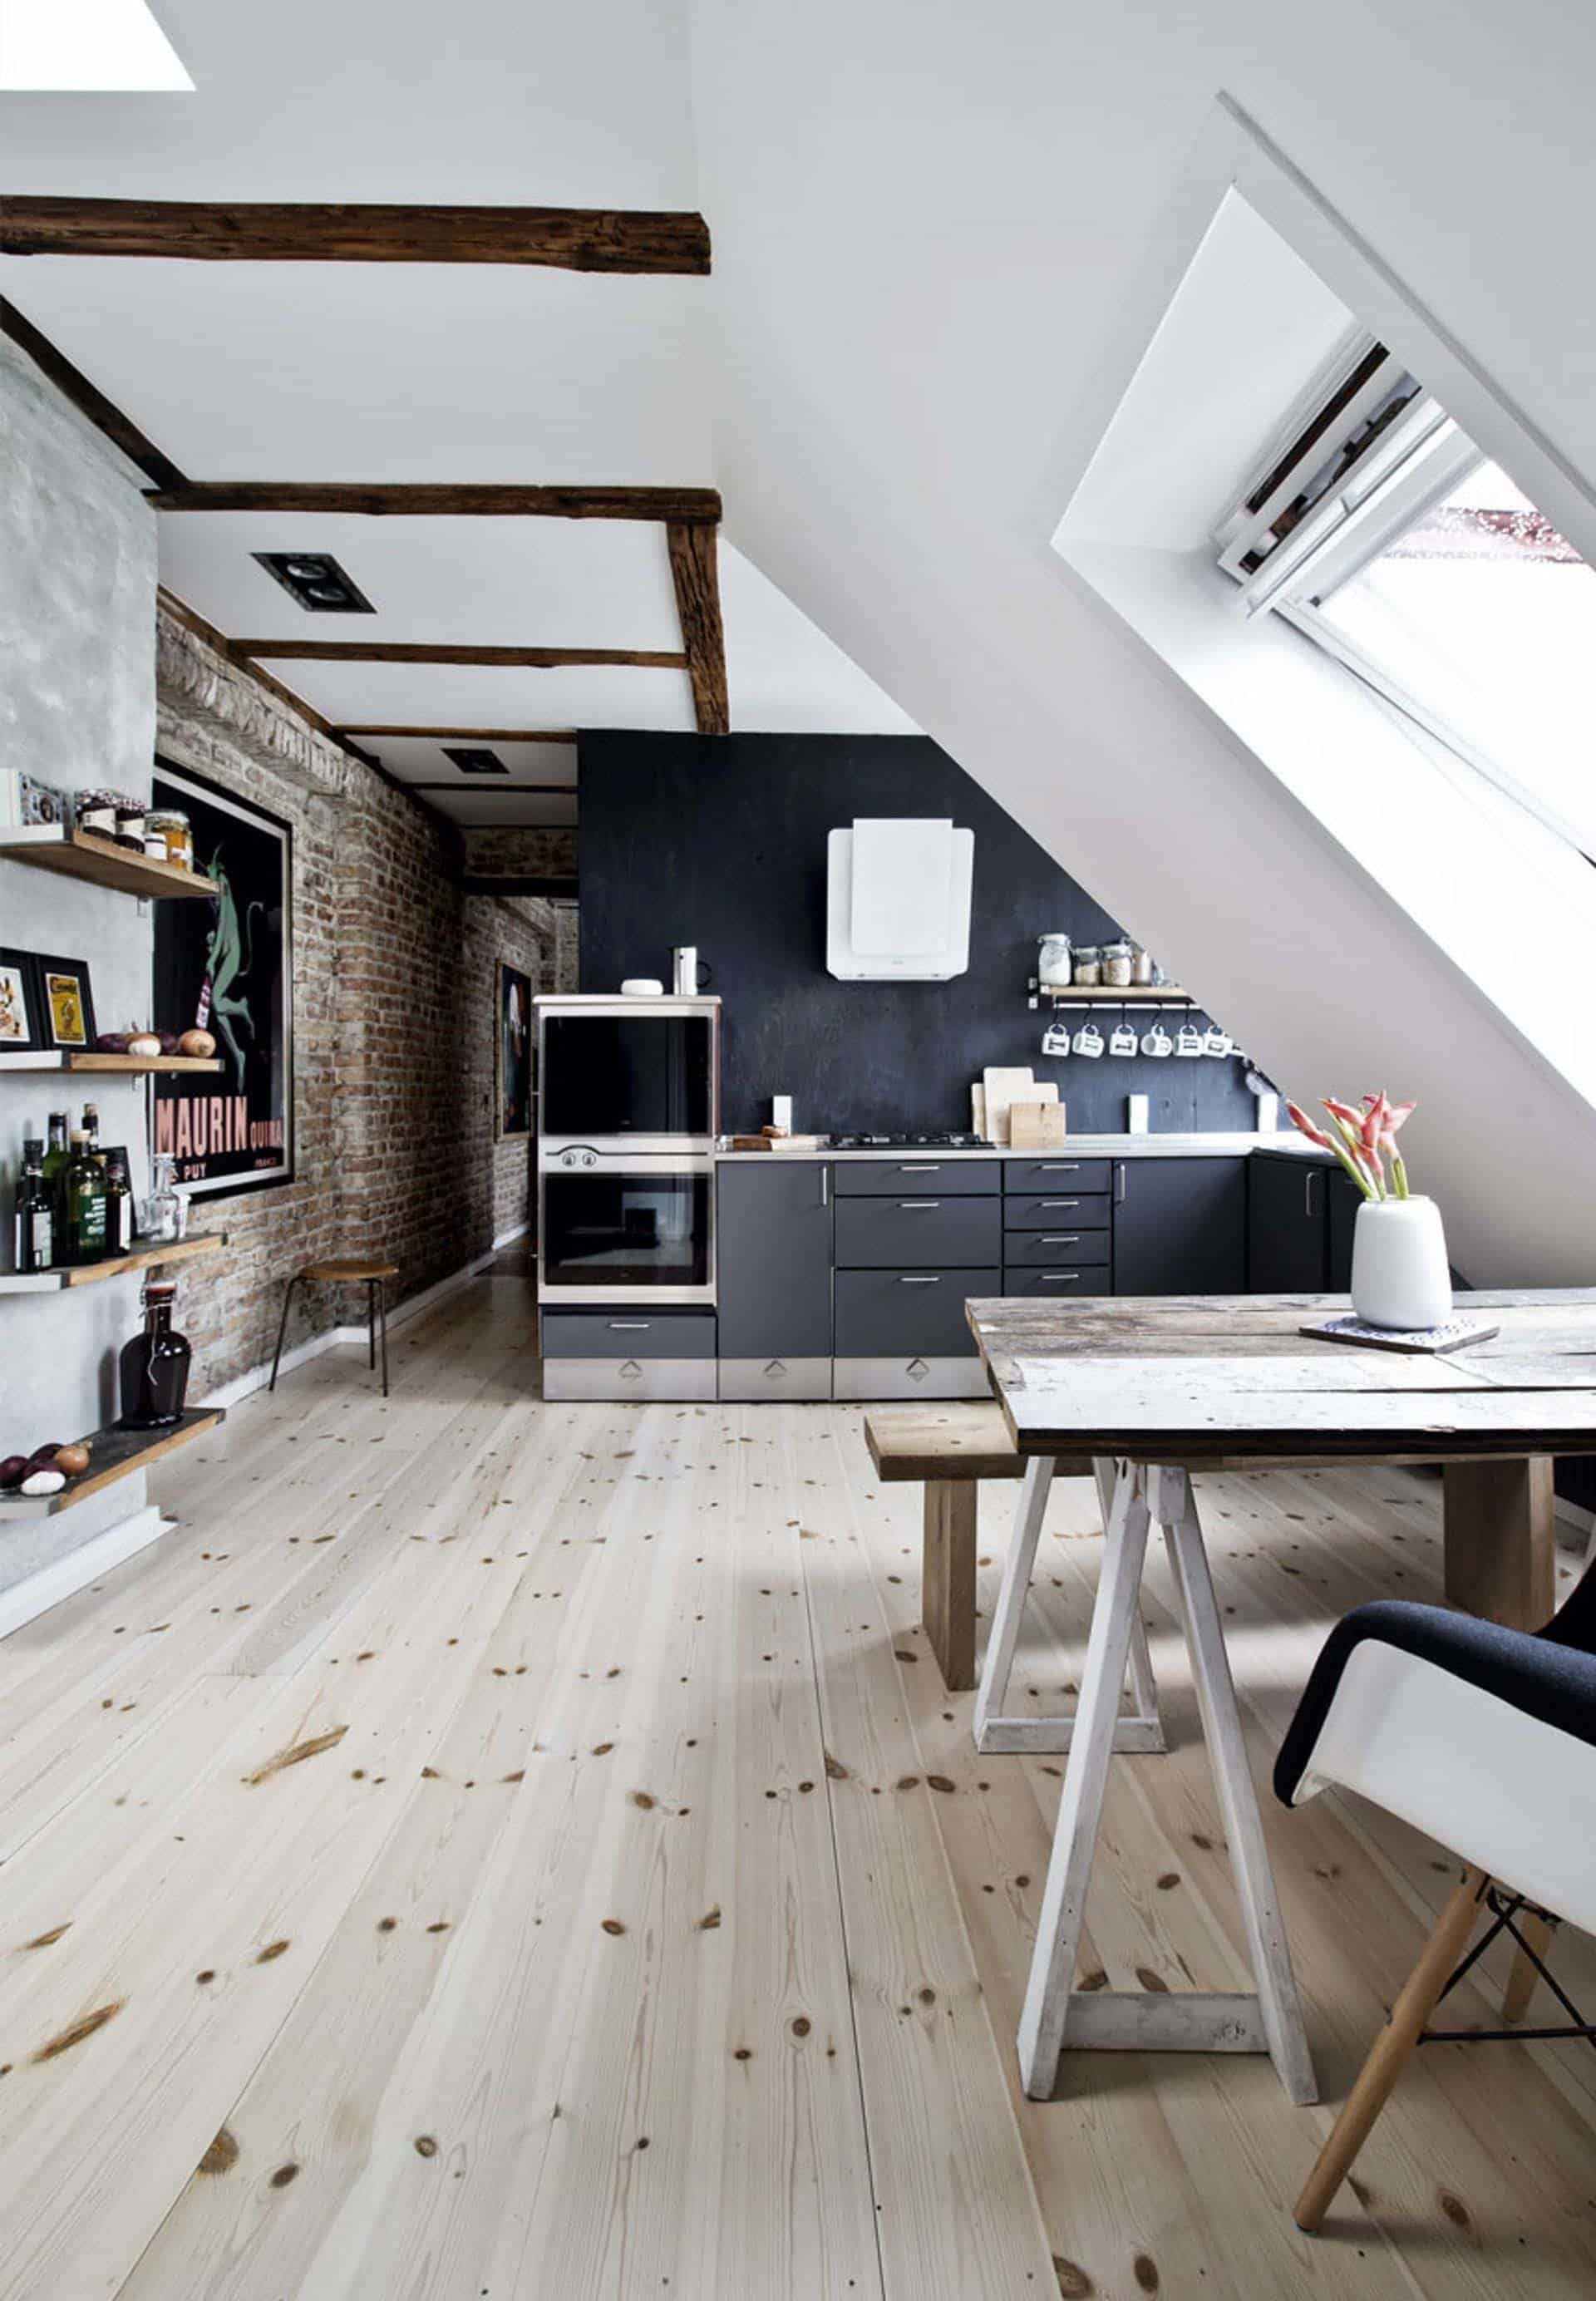 historic-apartment-renovation-08-1-kindesign